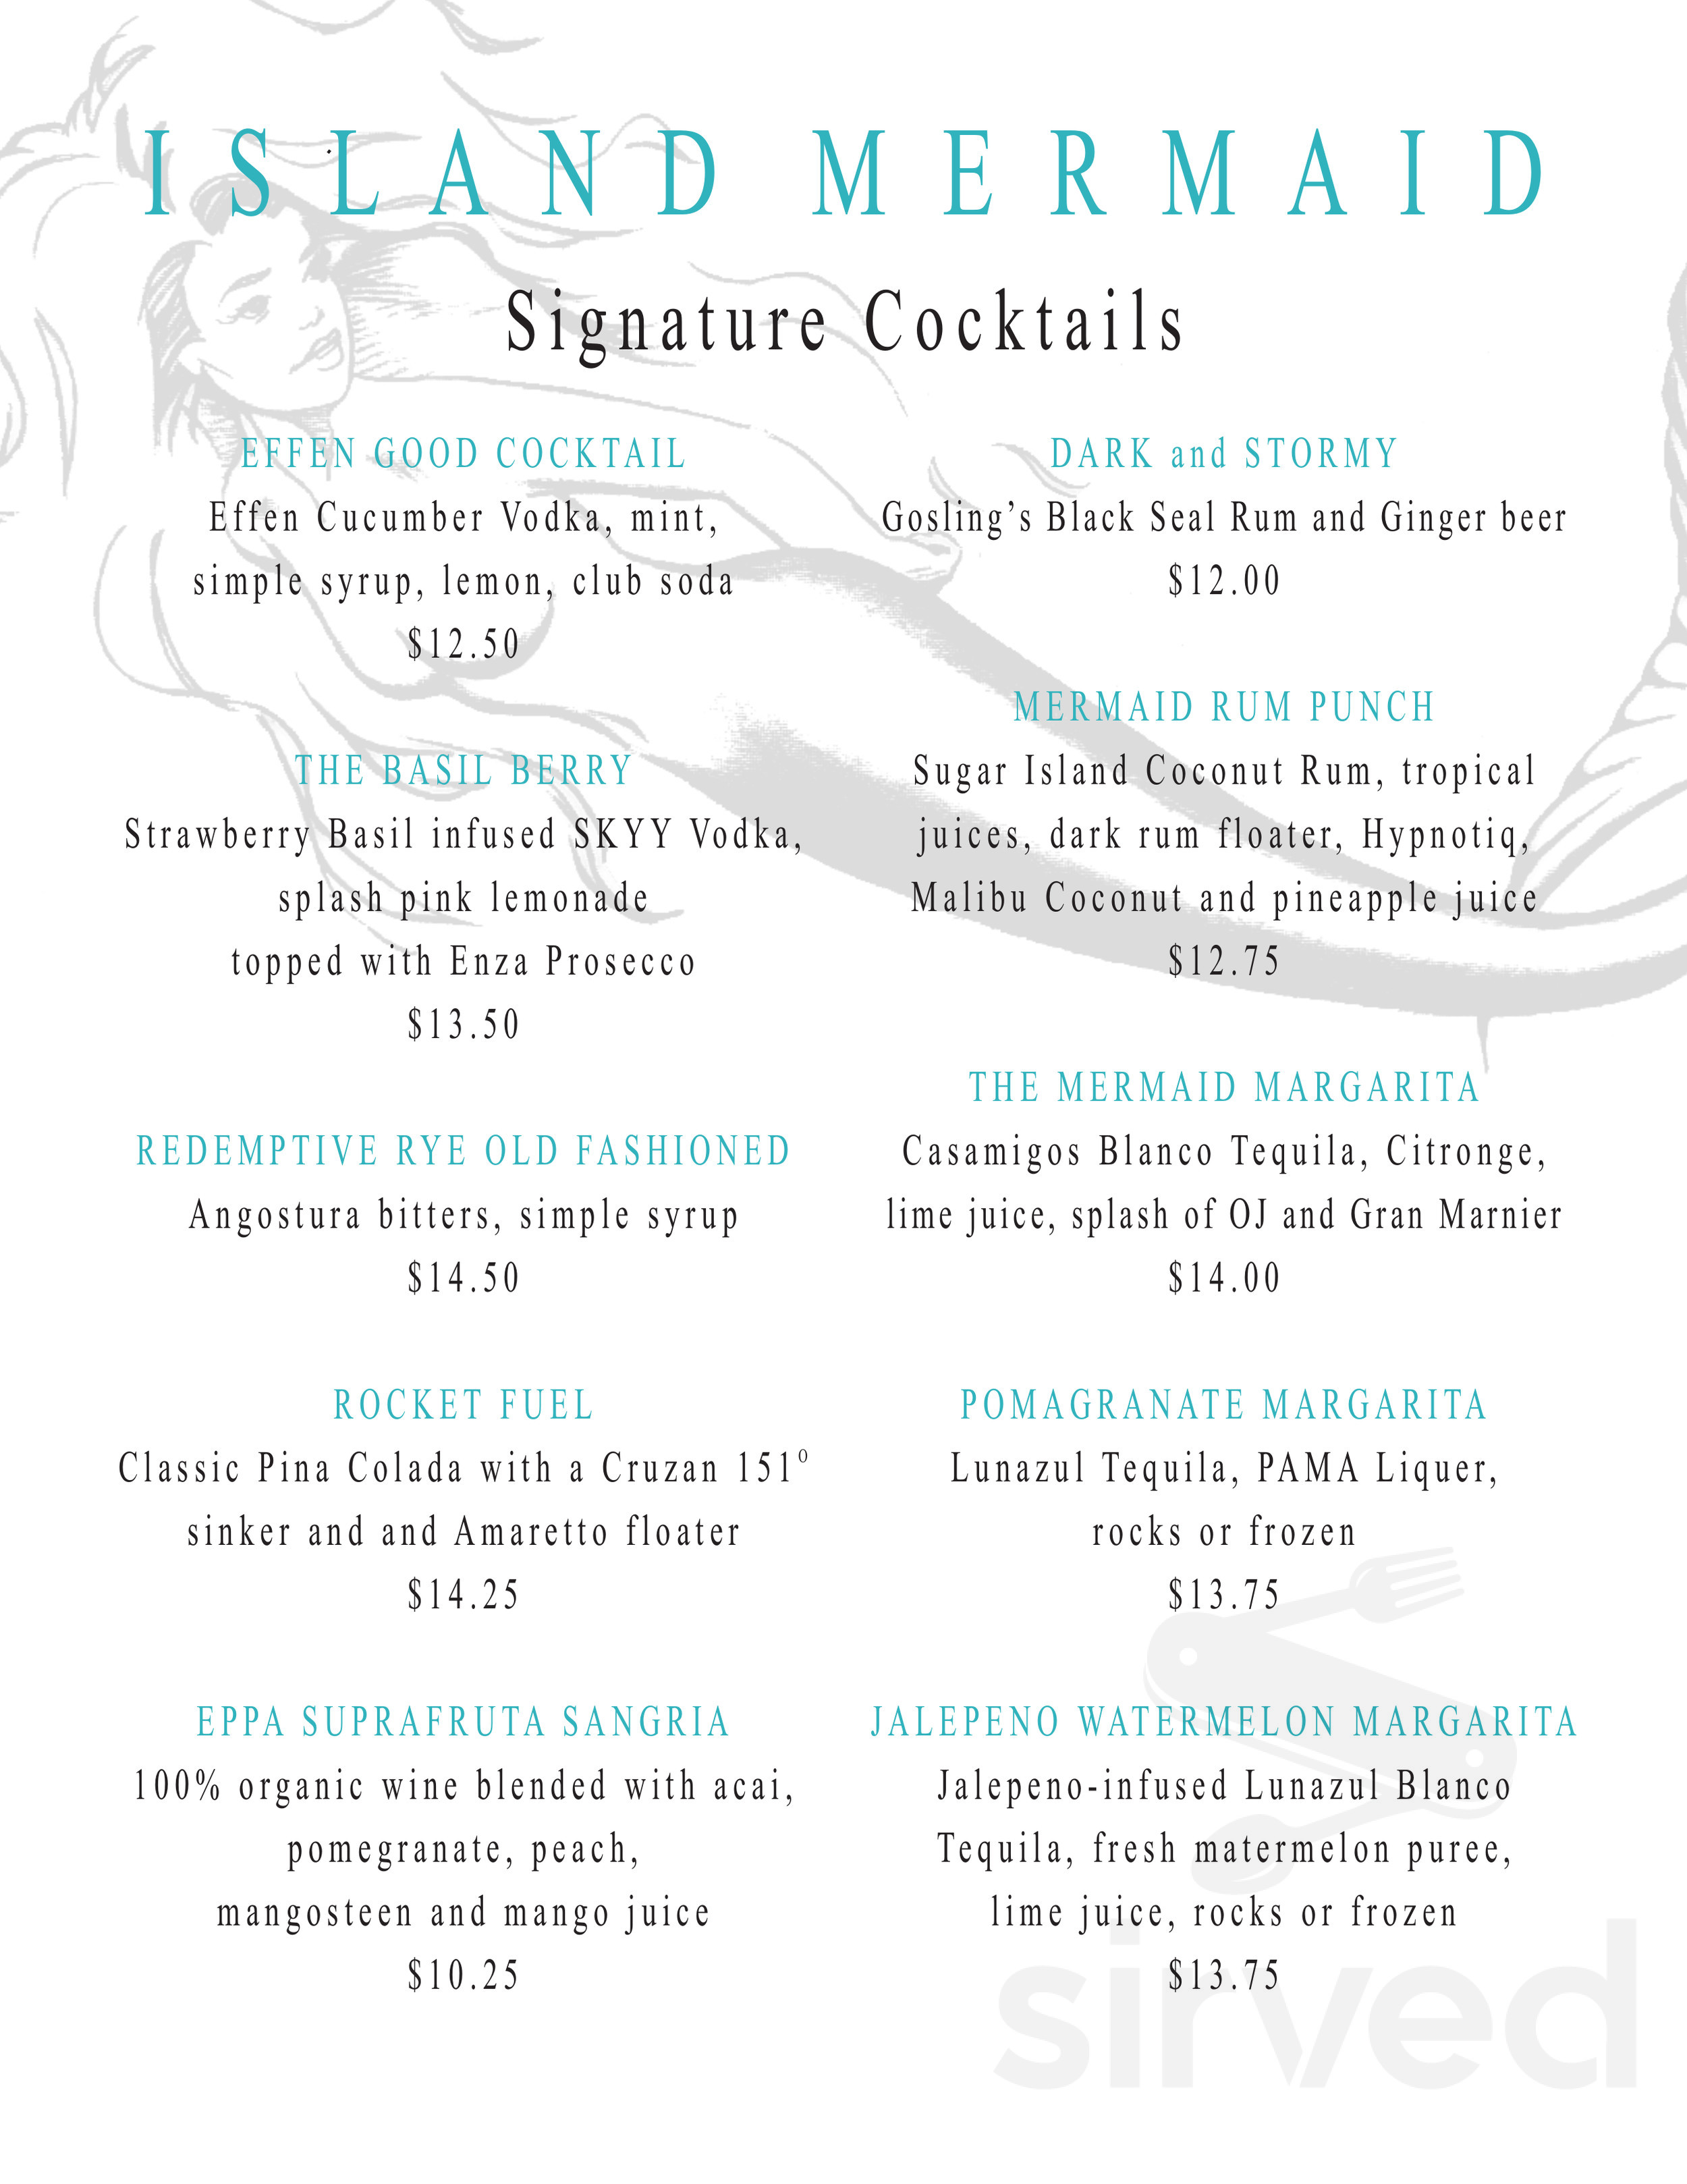 Menu for Island Mermaid in Ocean Beach, New York, USA